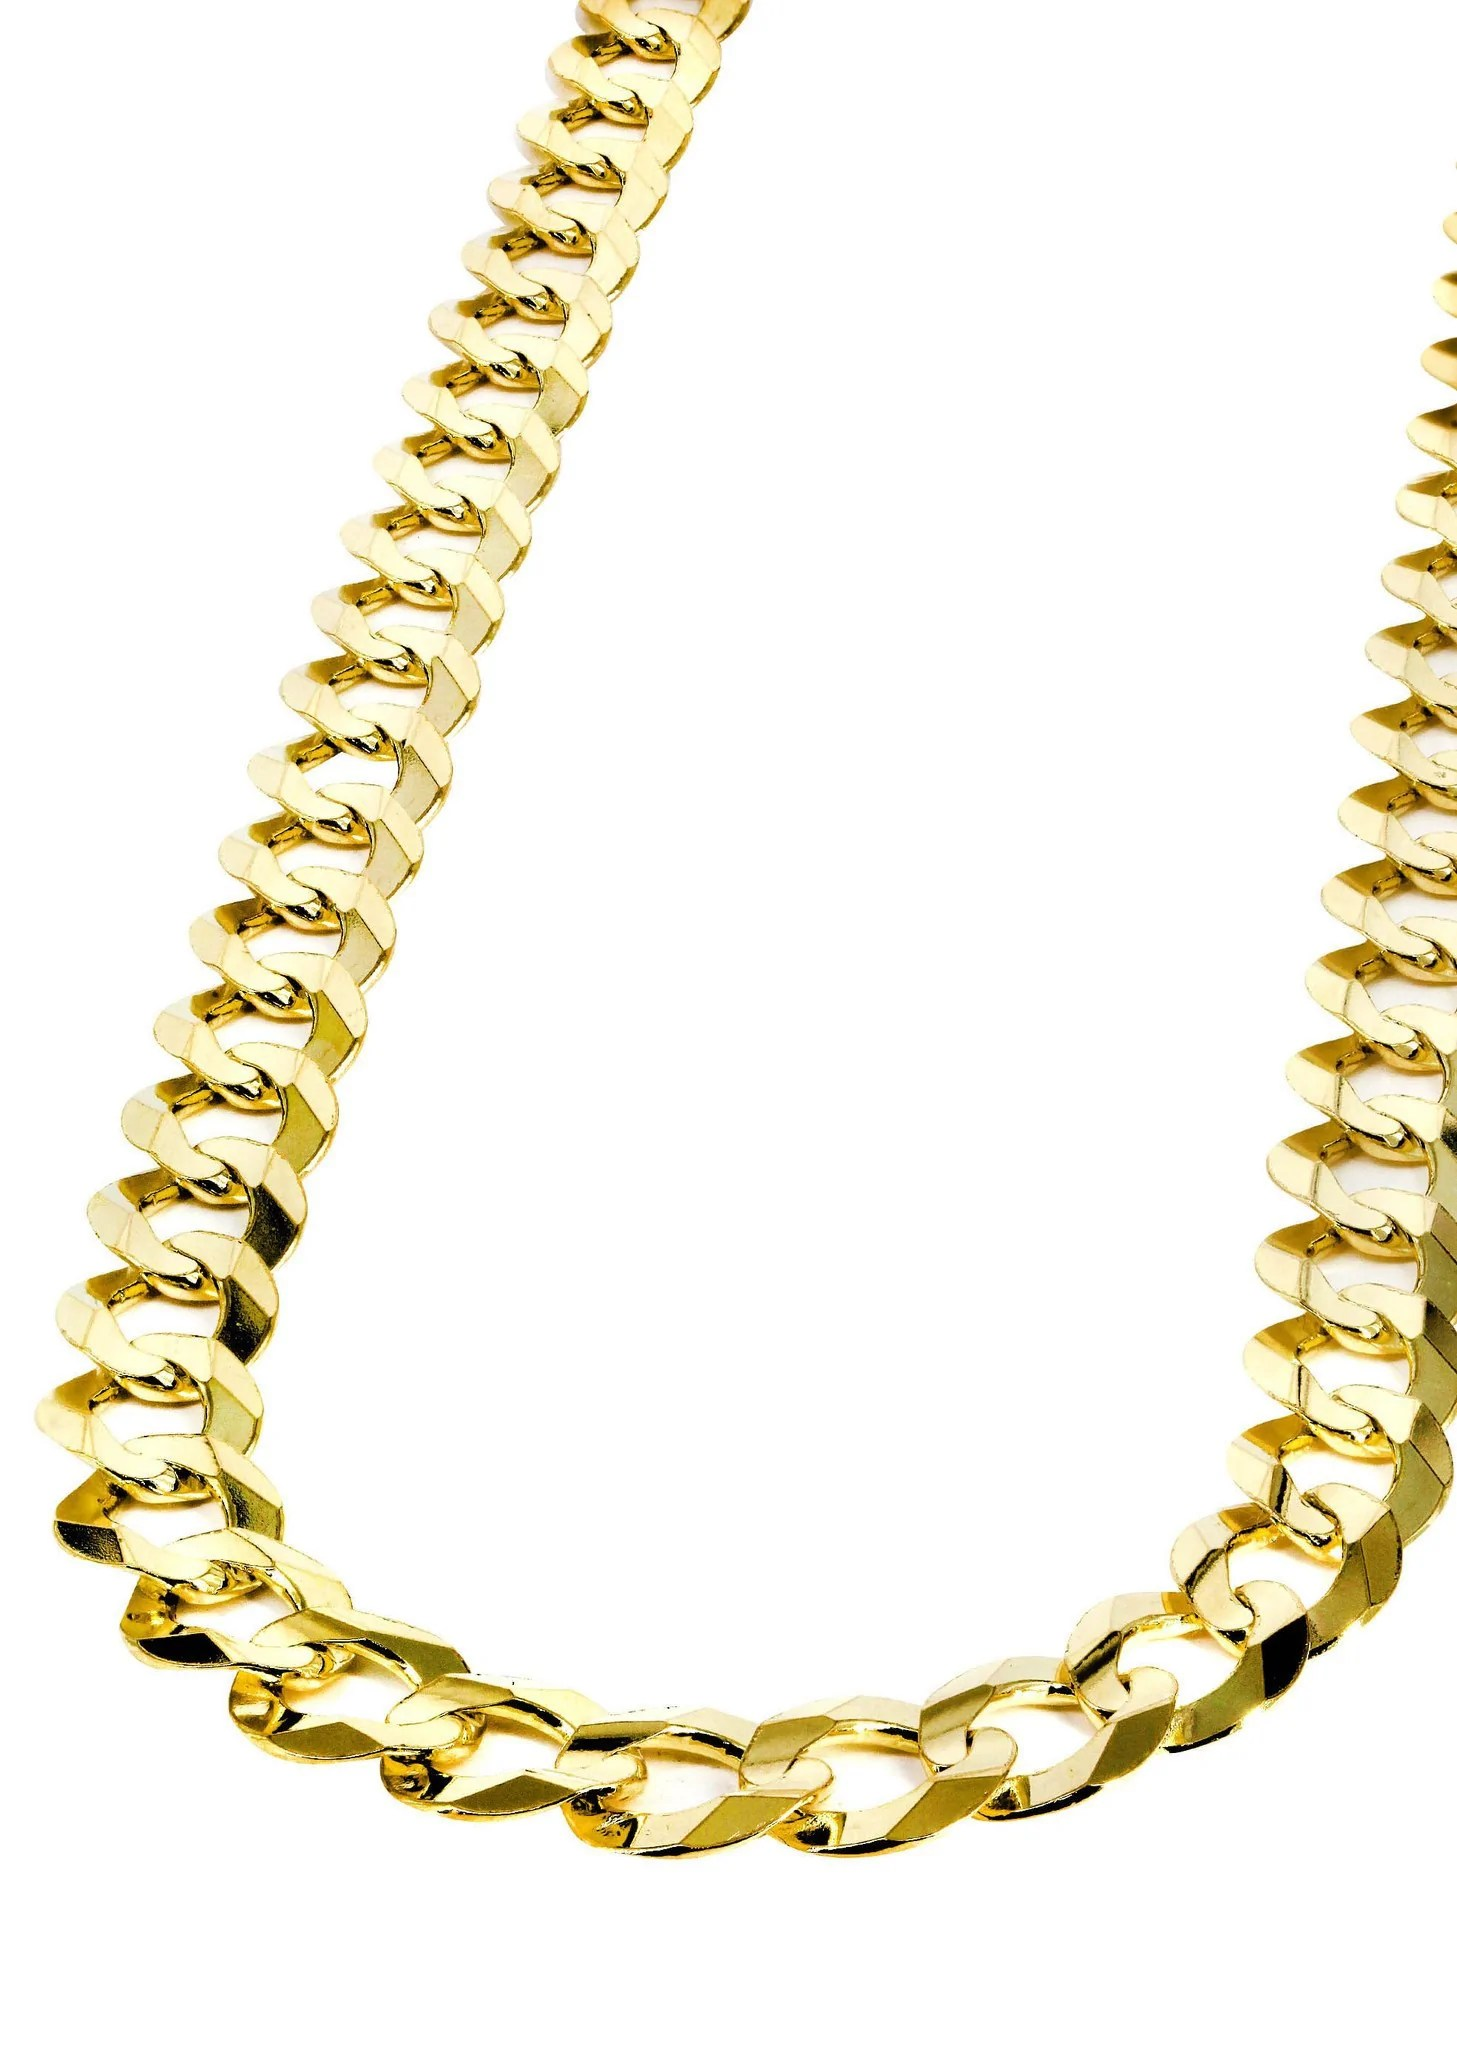 14k Gold Chain - Solid Cuban Link Frostnyc